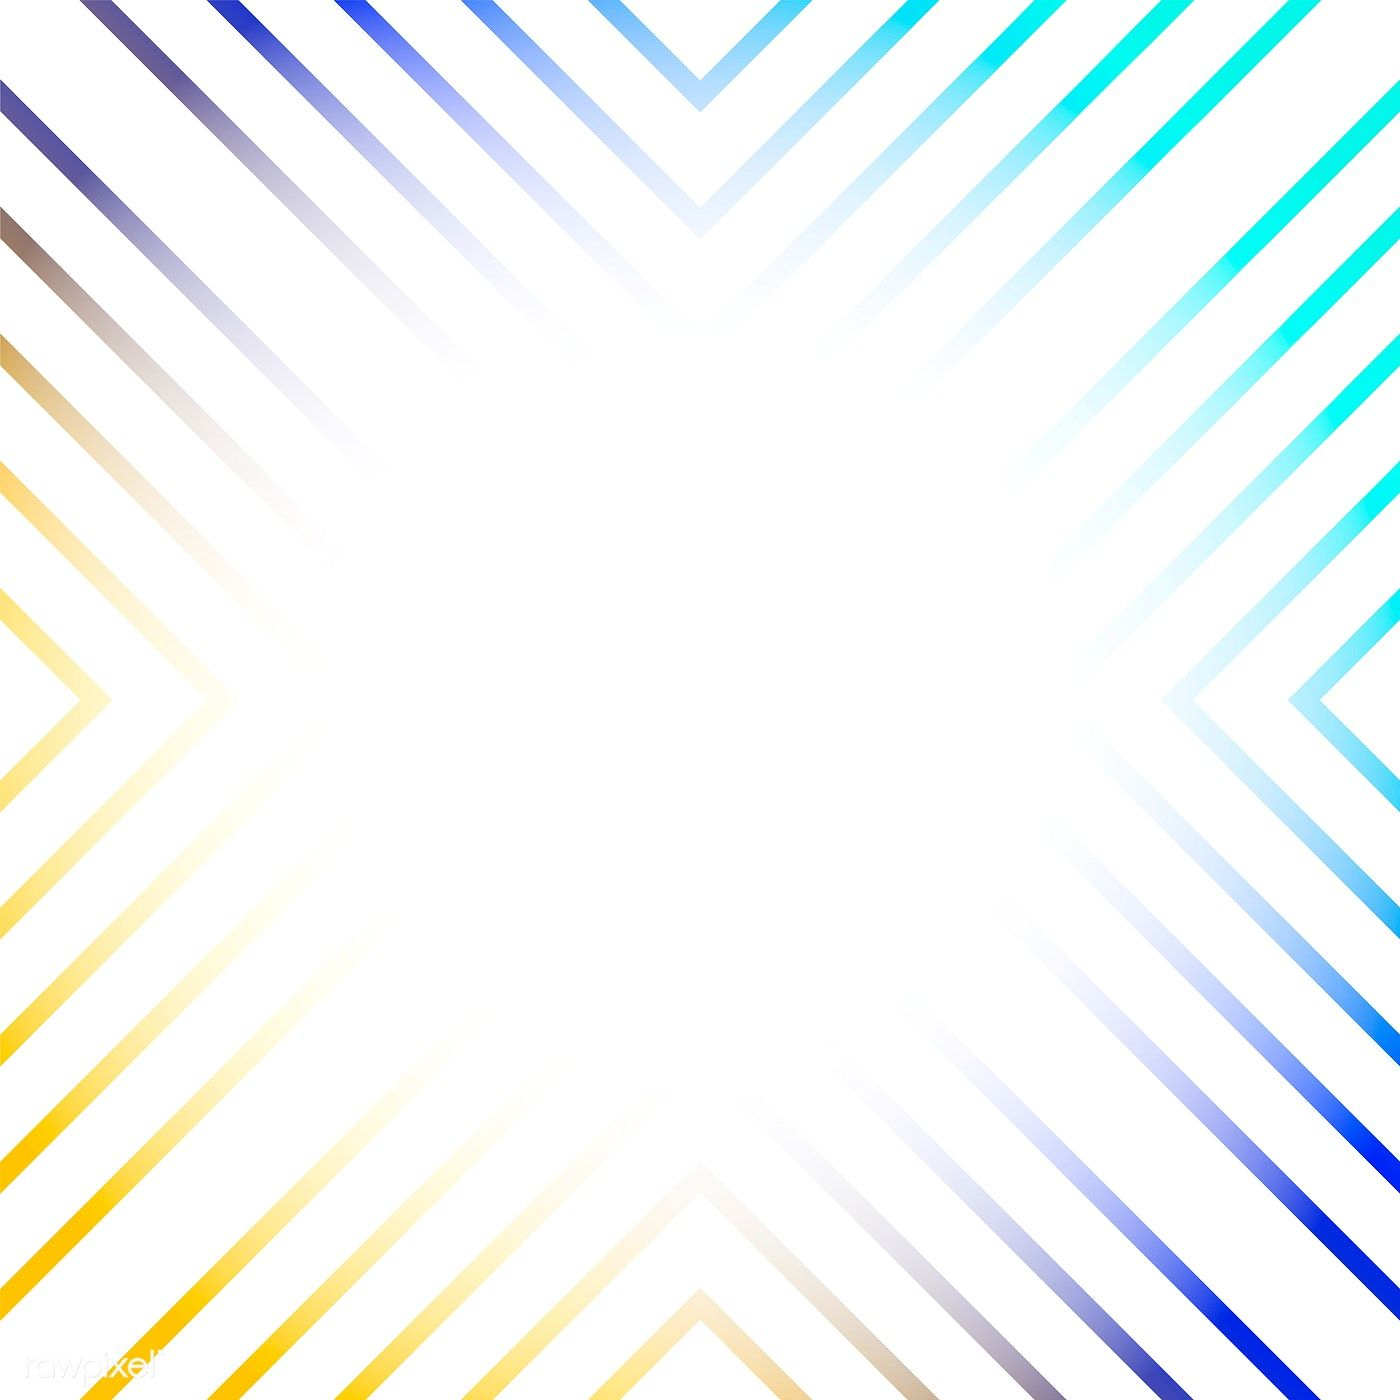 Colorful Linear Abstract Background Vector Free Image By